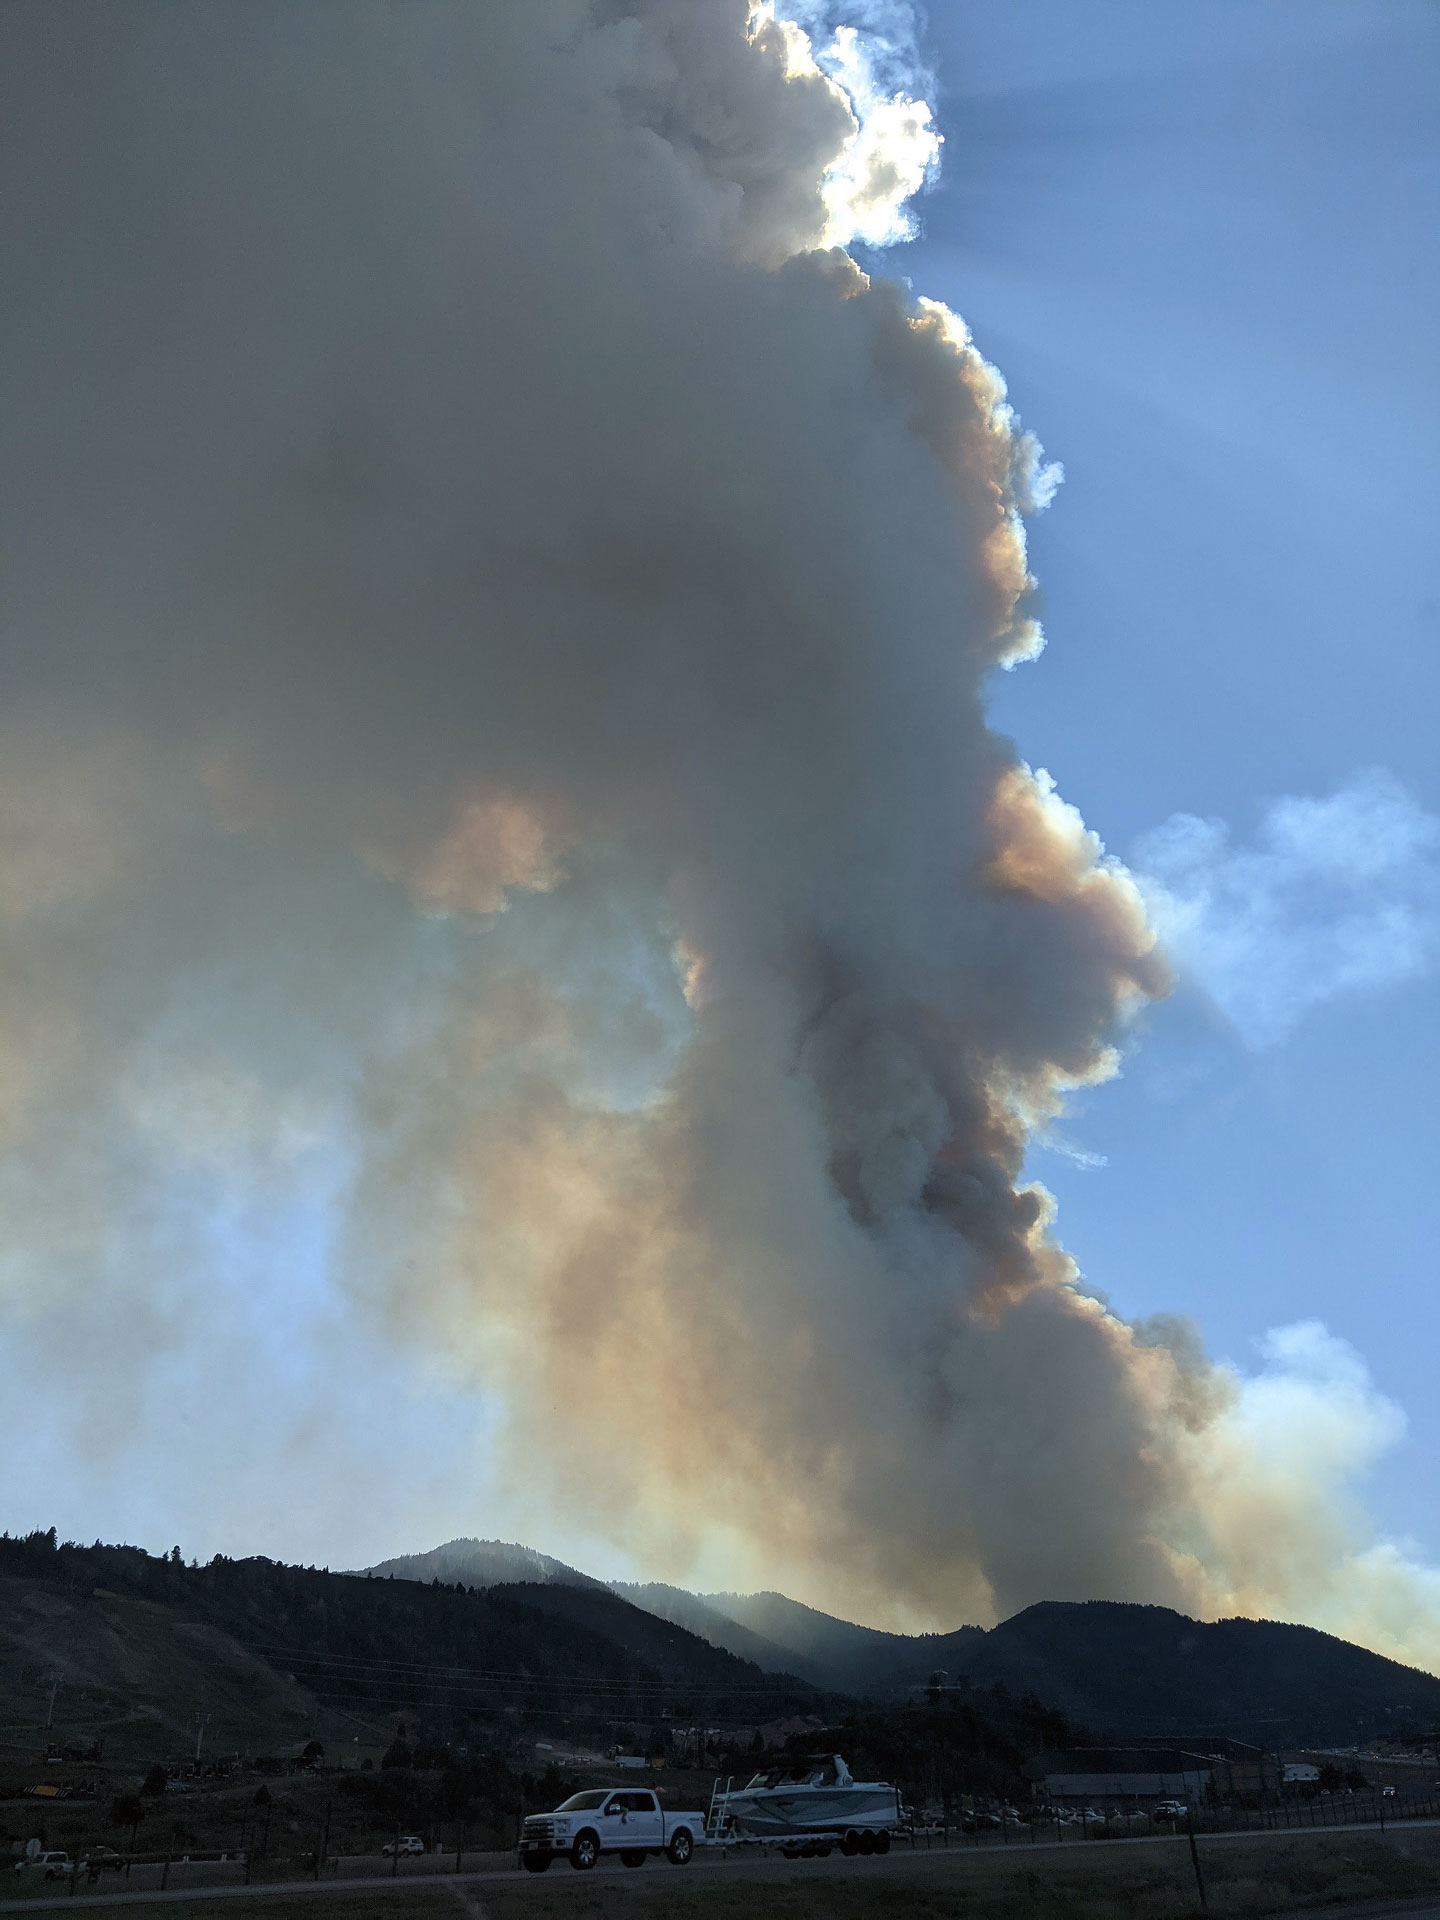 A plume of smoke rises over the mountains on I-80 in Parleys Canyon